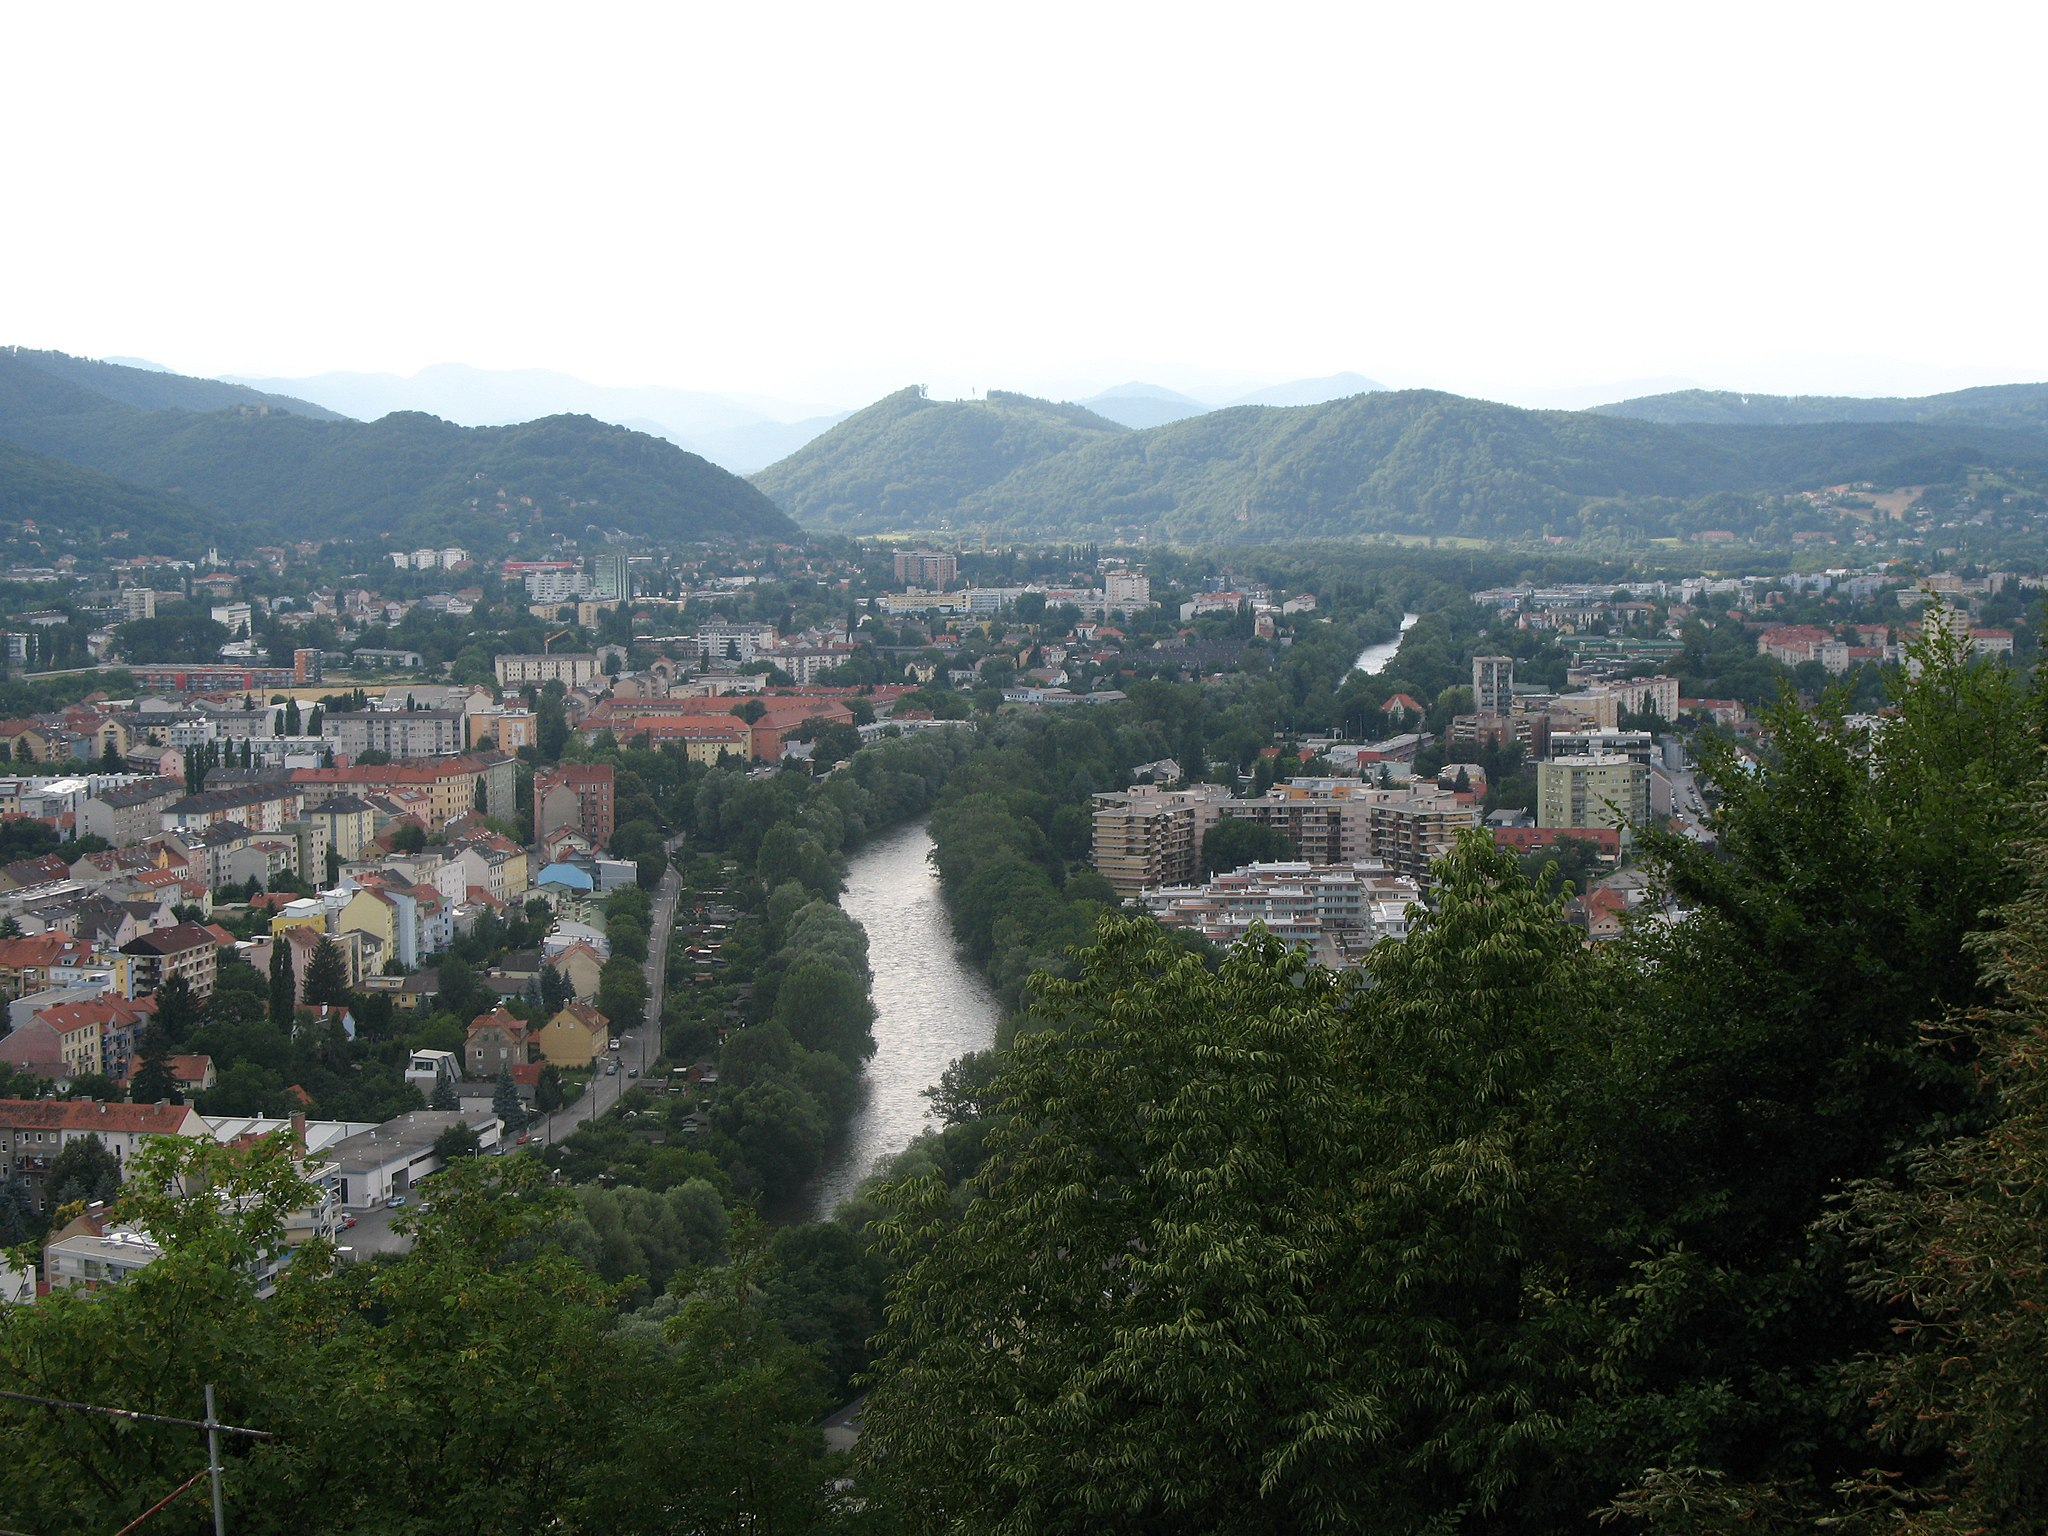 IMG 0498 - Graz - View from Schlossberg